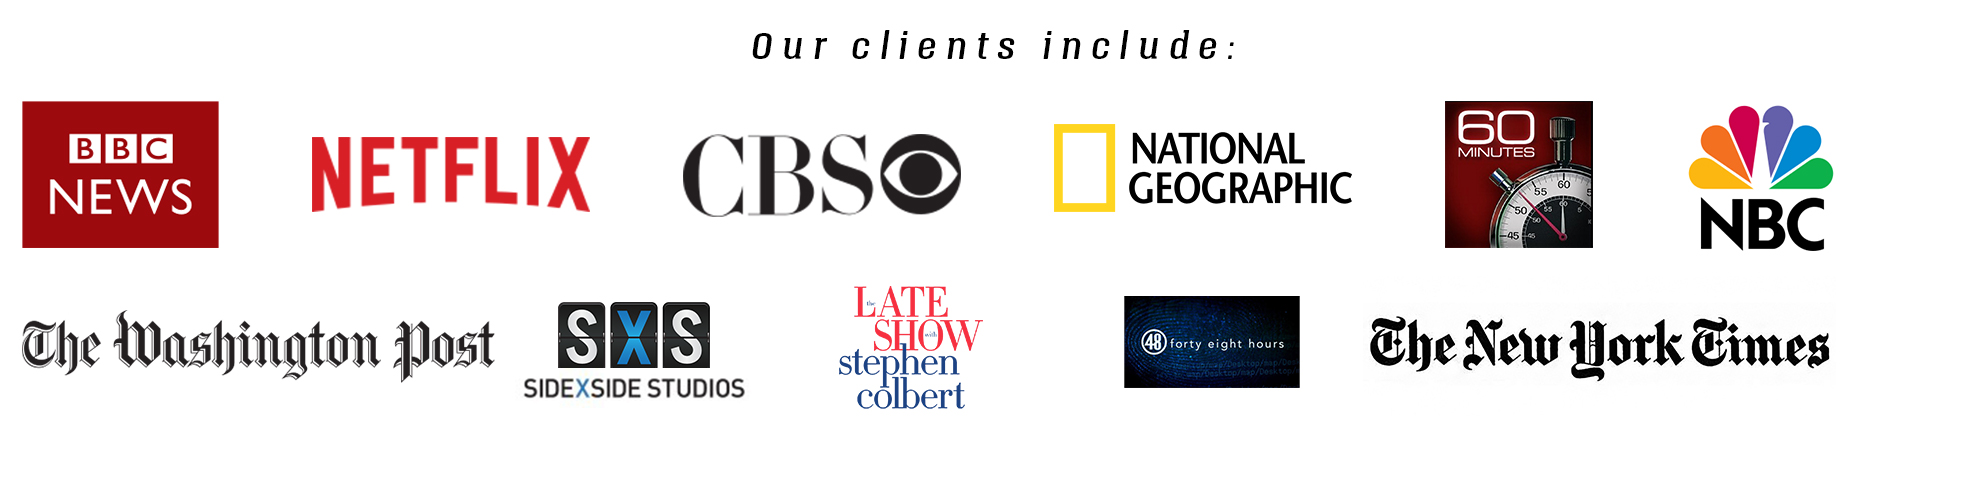 Client Logos banner with 'our clients'.jpg